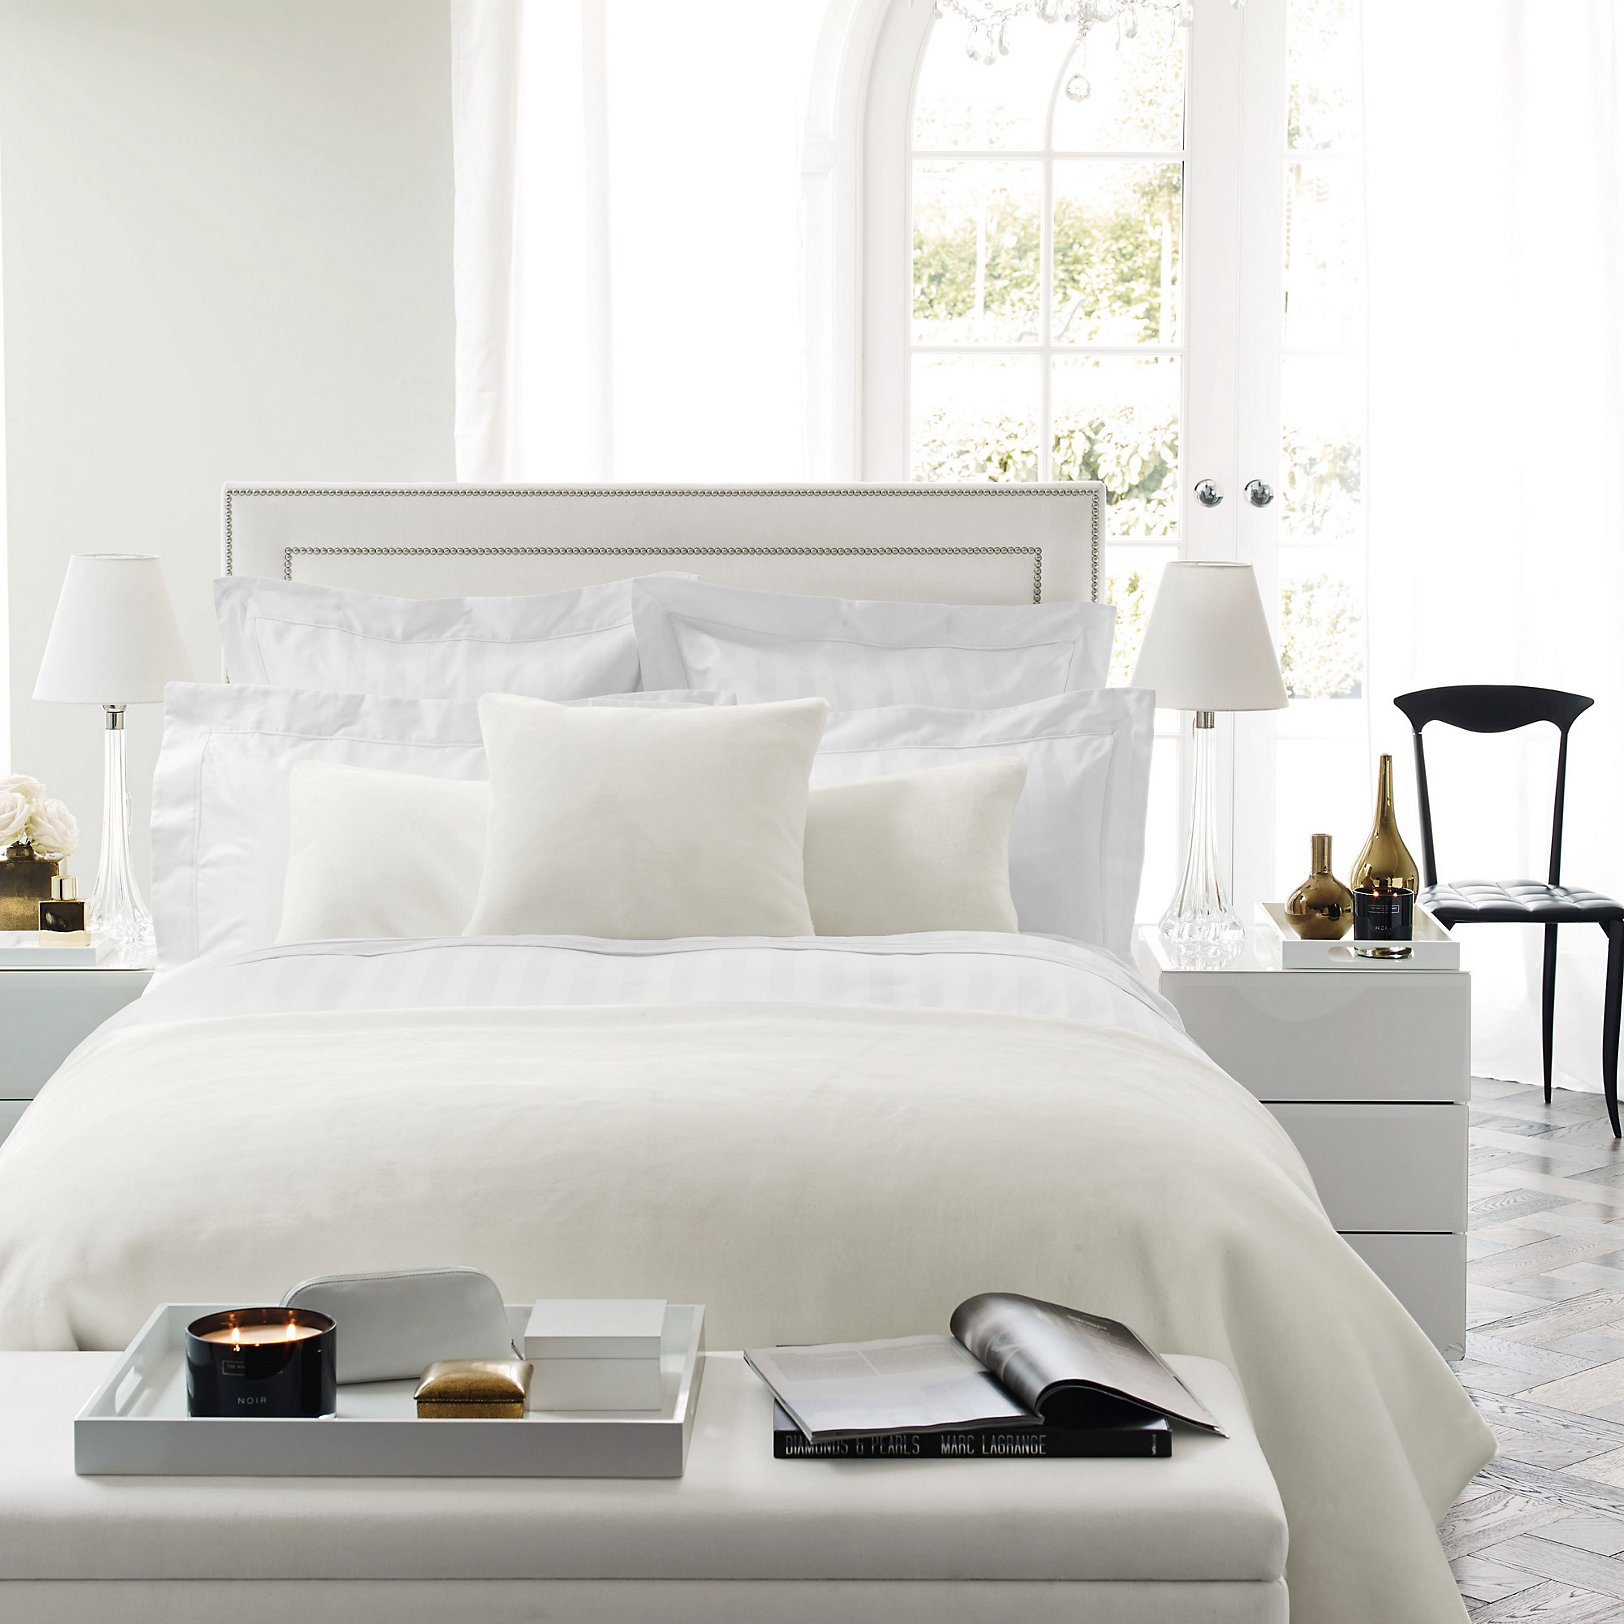 6 tips to get the White Company look in your home – Feioi